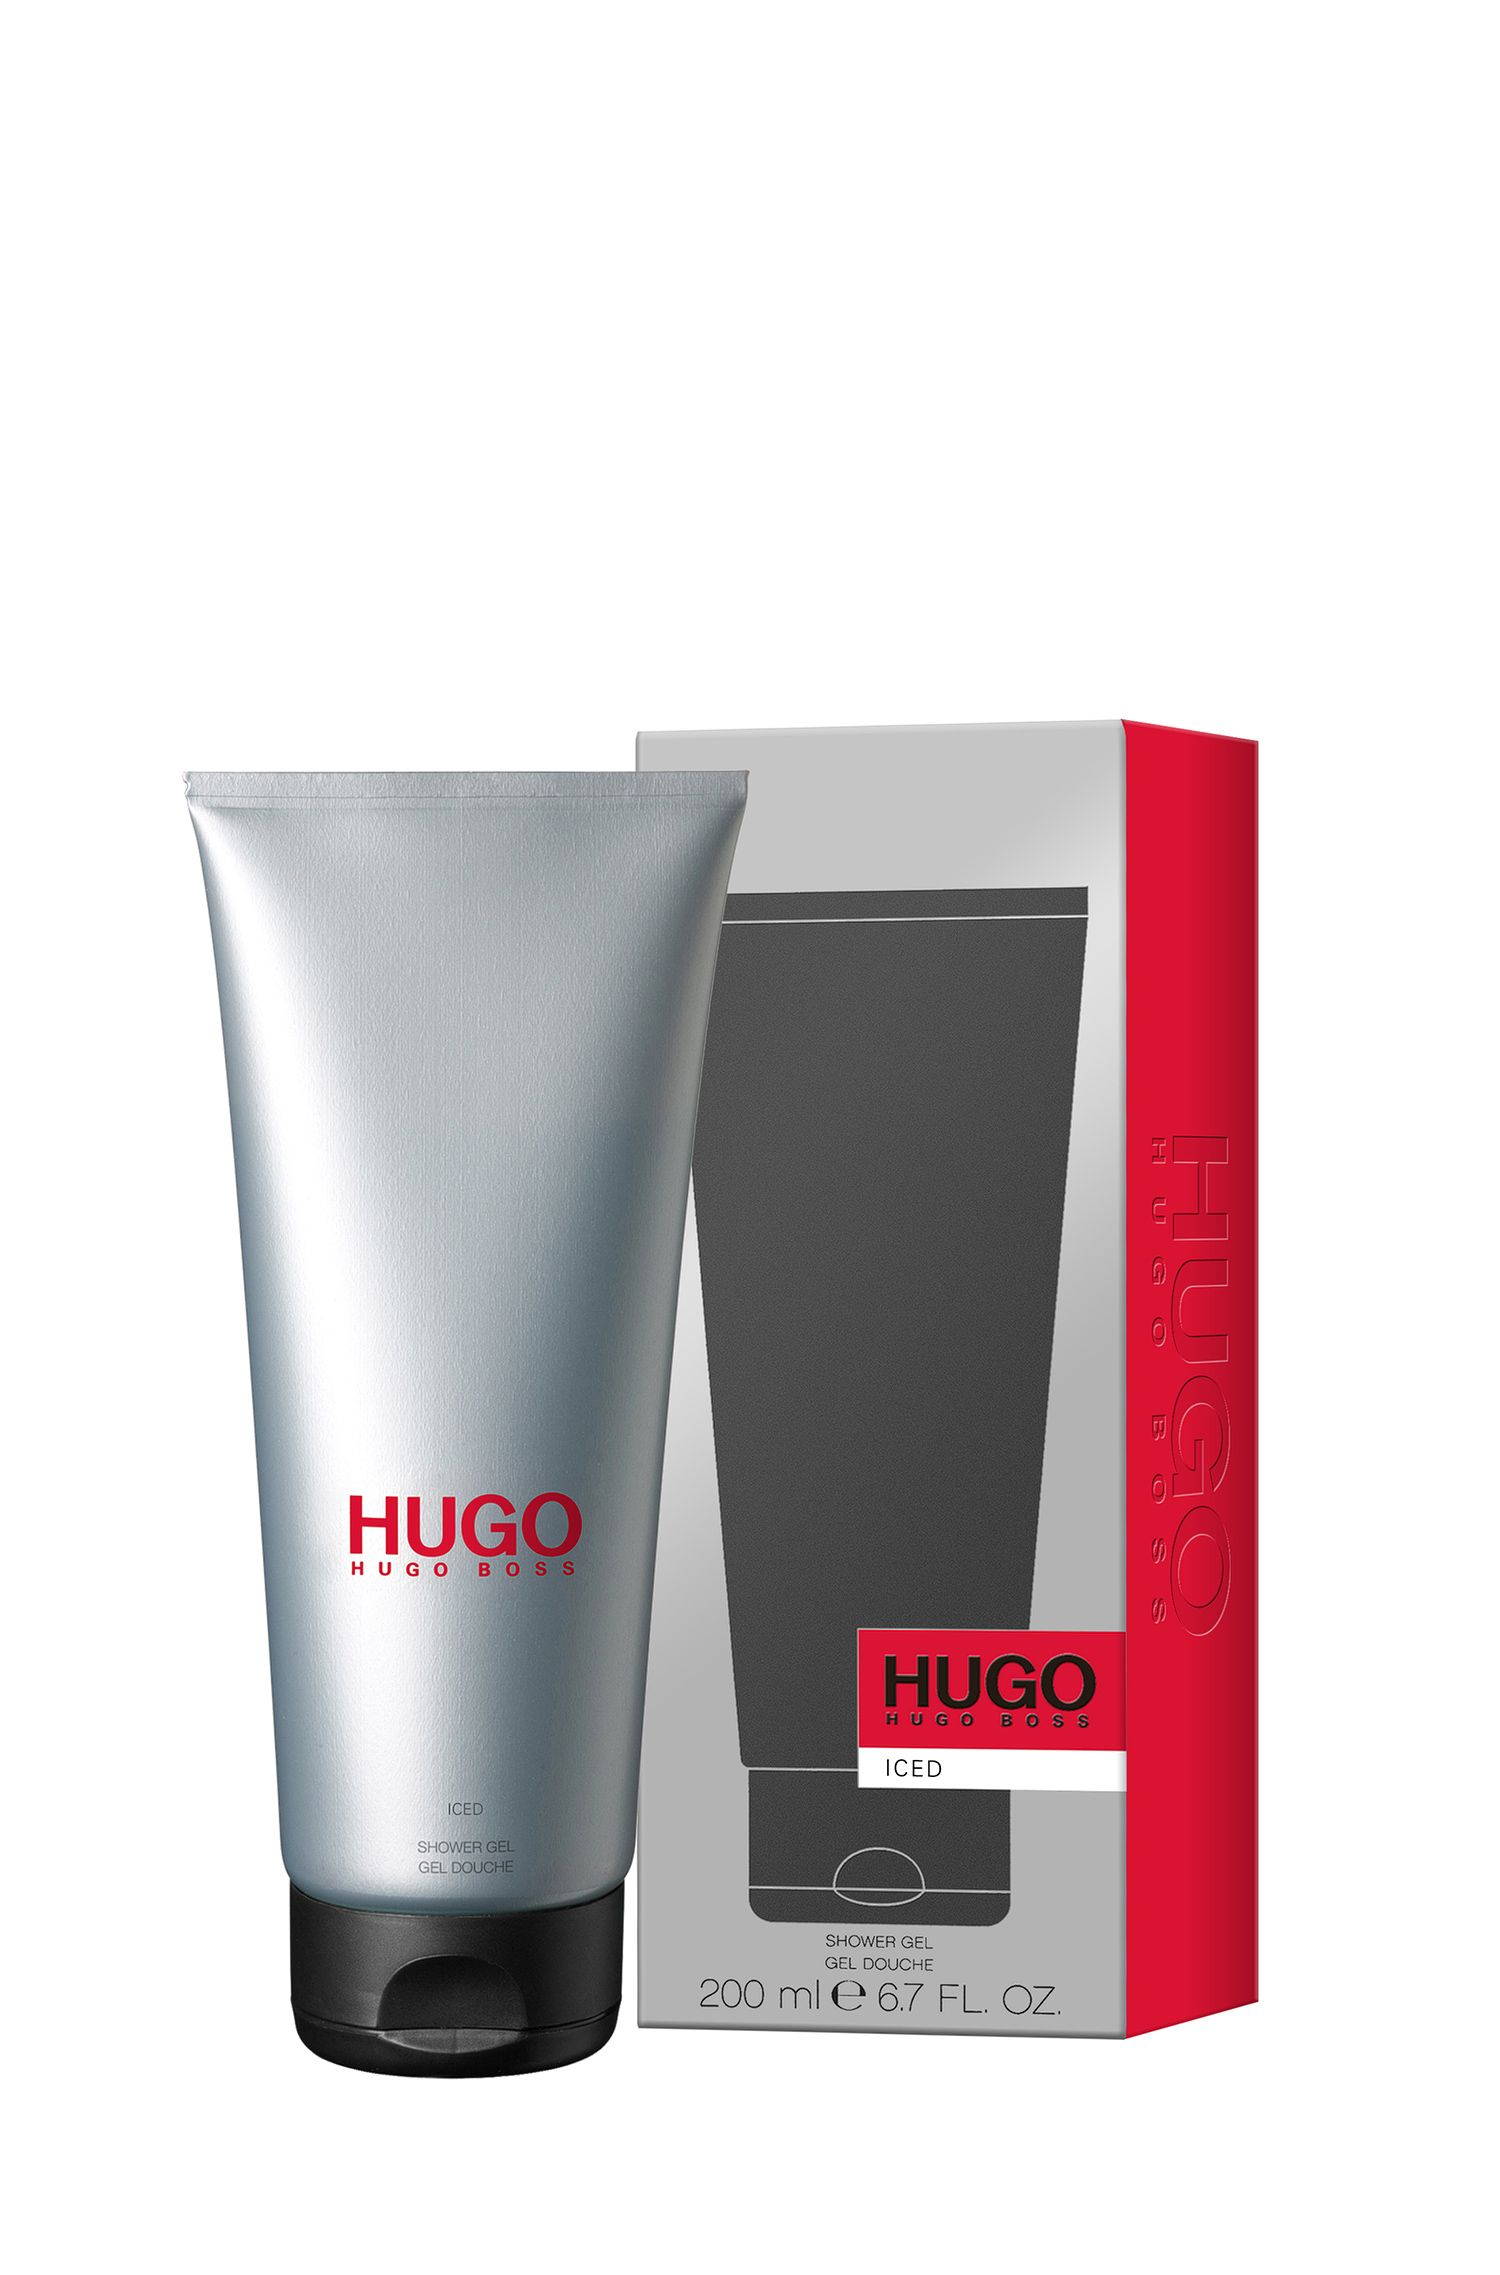 Gel de ducha HUGO Iced de 200 ml